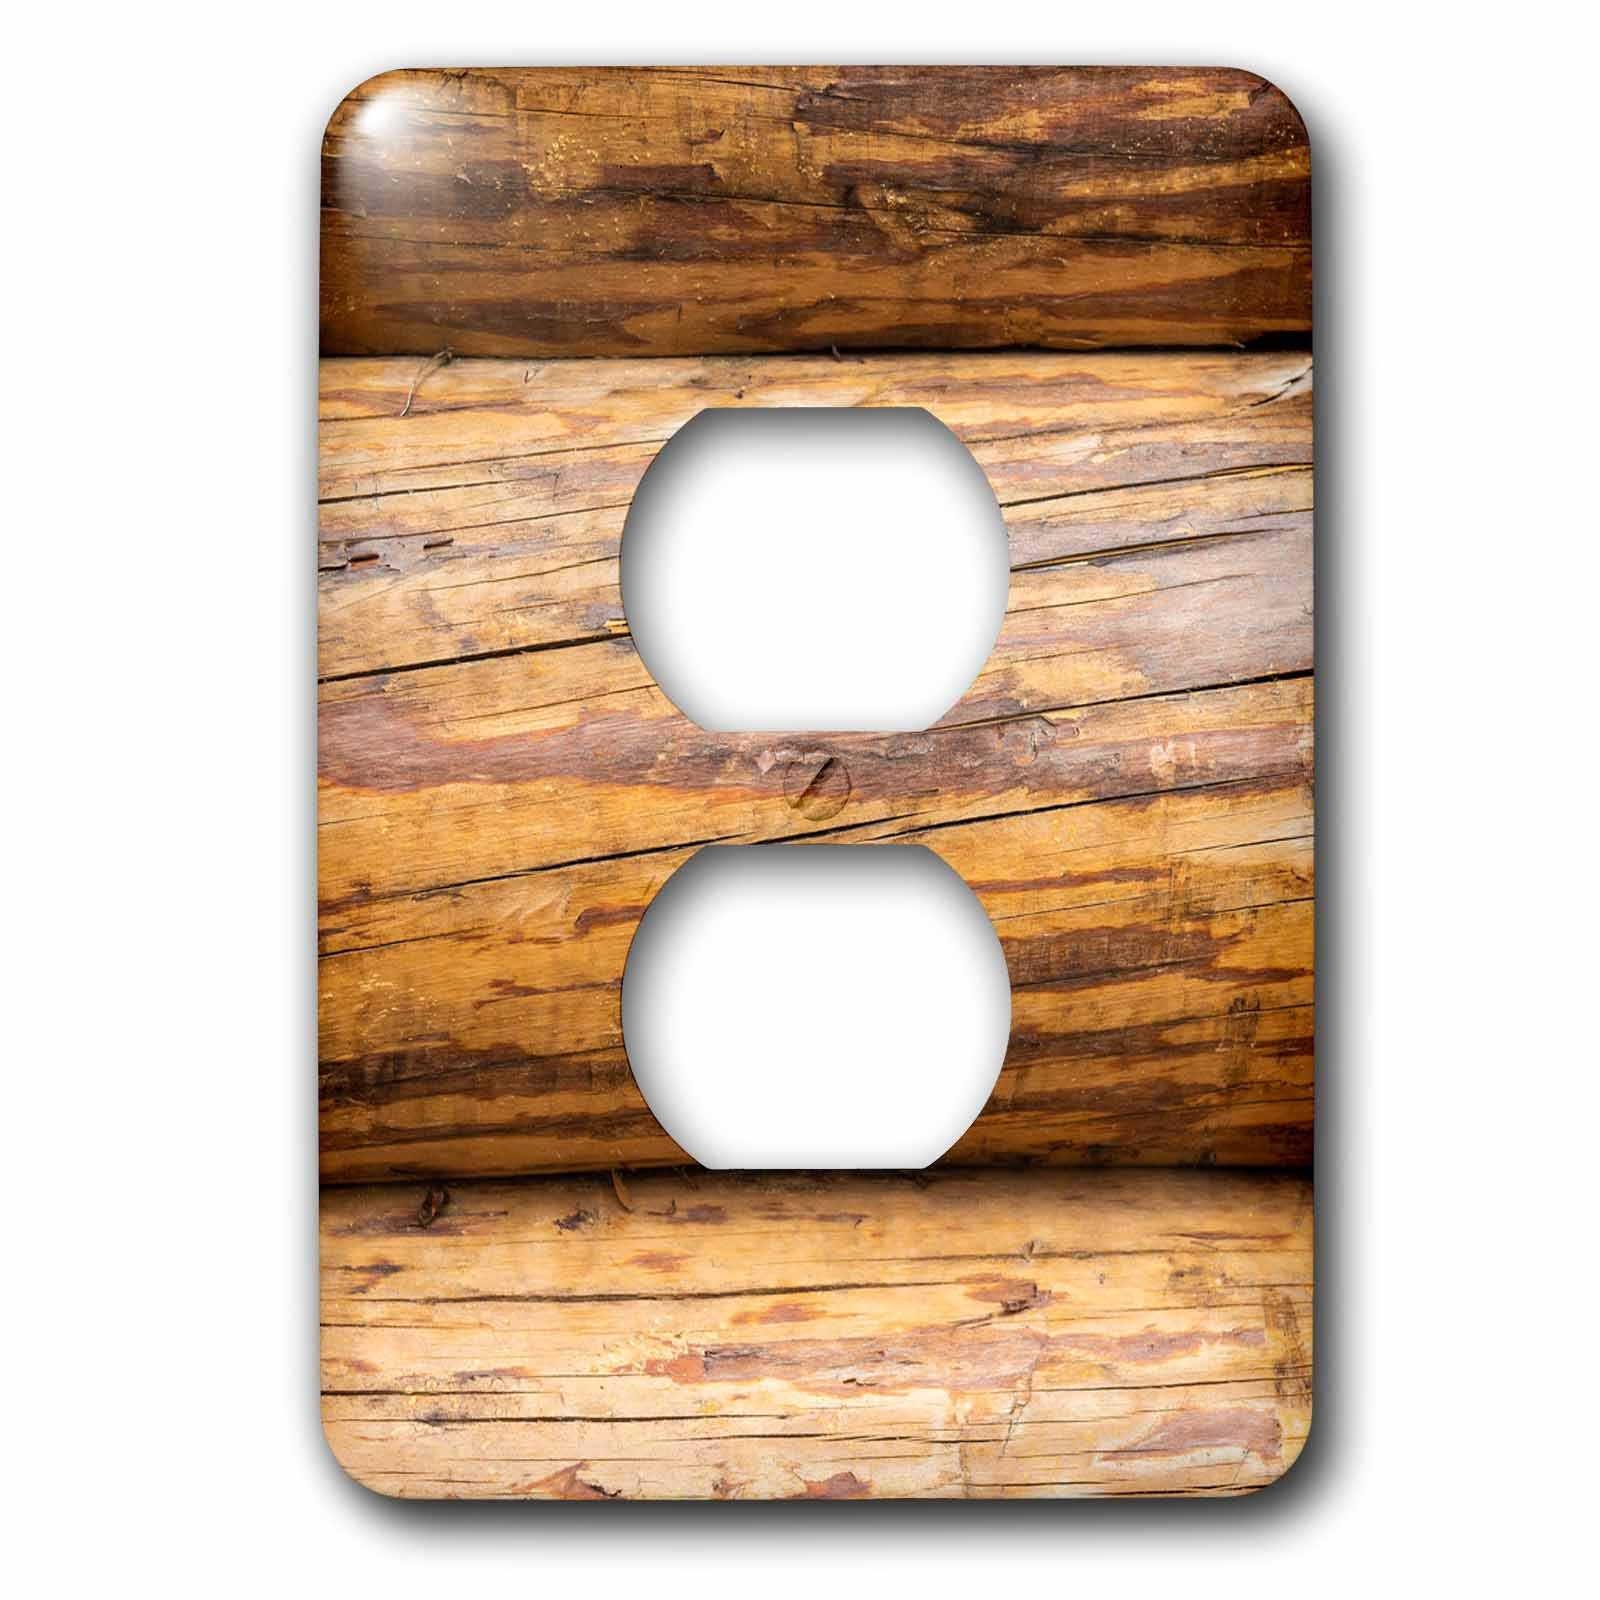 3dRose Alexis Photography - Texture Wood - Image of three horizontal timber logs. Detail view of a wooden wall - Light Switch Covers - 2 plug outlet cover (lsp_286664_6) by 3dRose (Image #1)